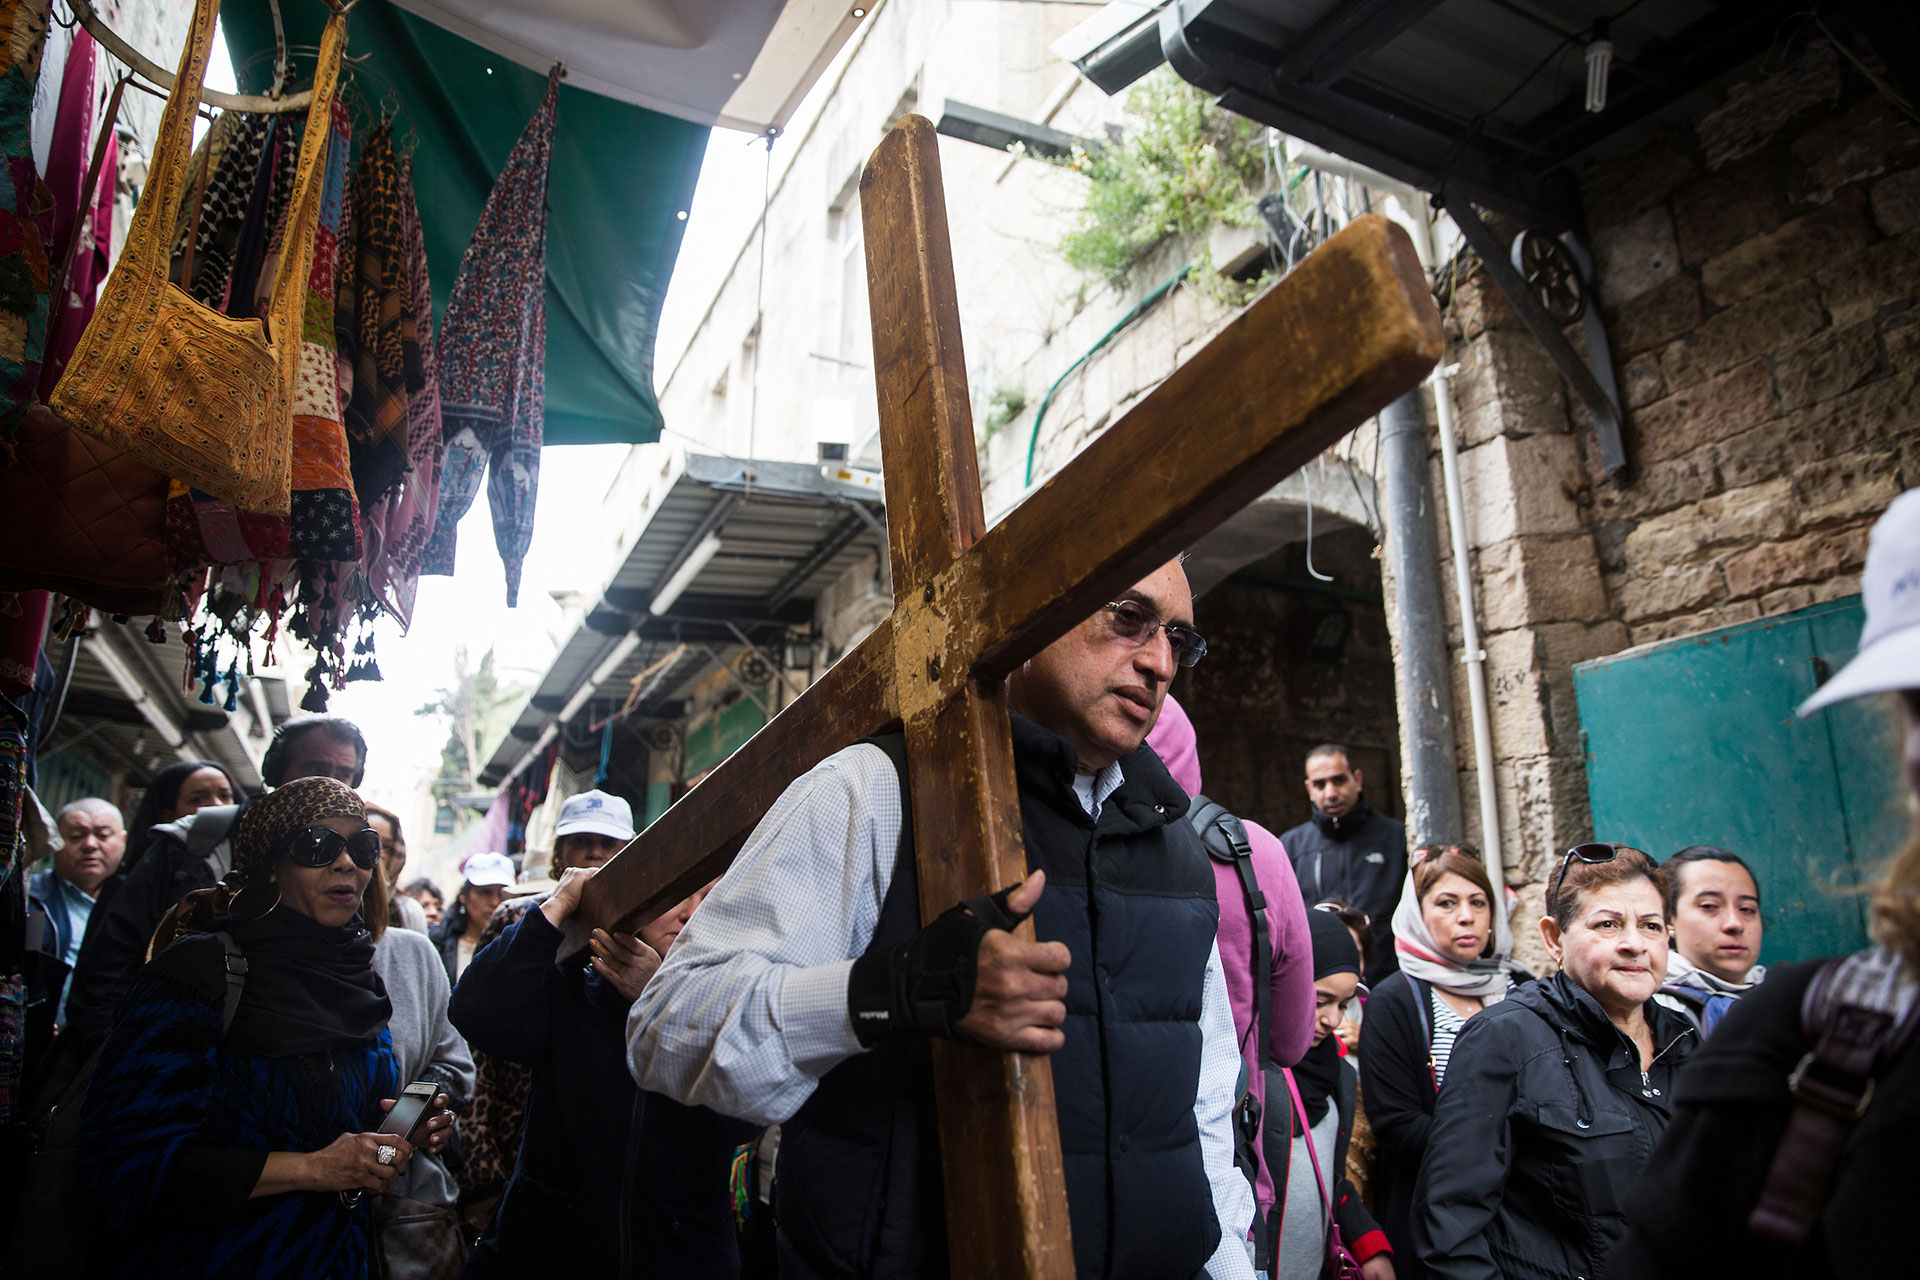 Christian worshippers along the Via Dolorosa during the Good Friday procession in Jerusalem's Old City.Christians held processions today in the Old City of Jerusalem and around the world as they marked the holiday of Good Friday,commemorating the crucifixion of Jesus Christ and his death at Calvary .(Photo by Heidi Levine for The GroundTruth Project)